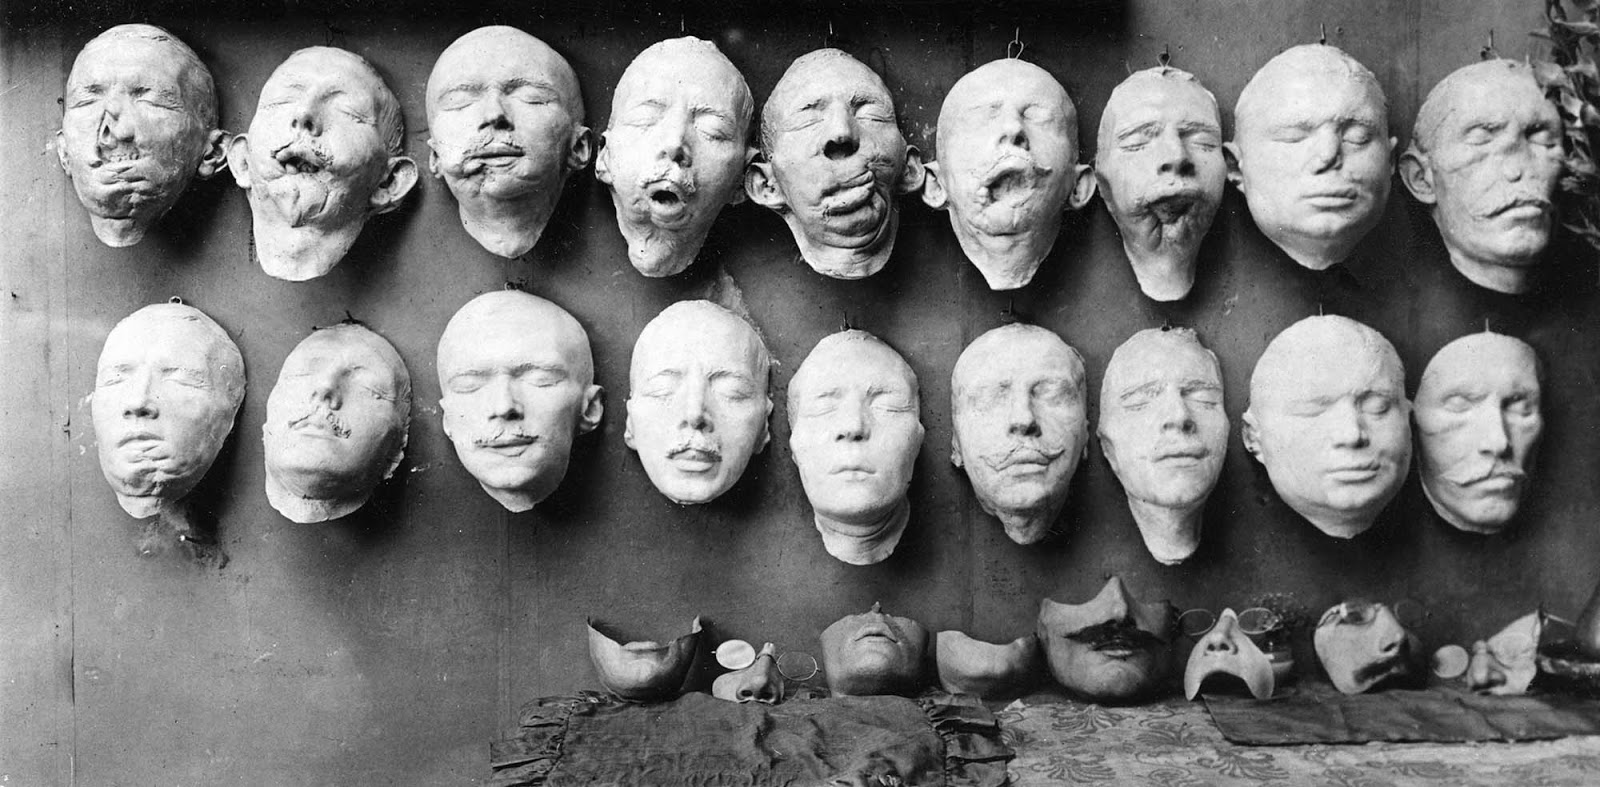 The top row of casts shows the first step in the process as these were molded from the soldiers' disfigured faces.The bottom row of casts shows the molds with restorative work sculpted by Anna Coleman Ladd.